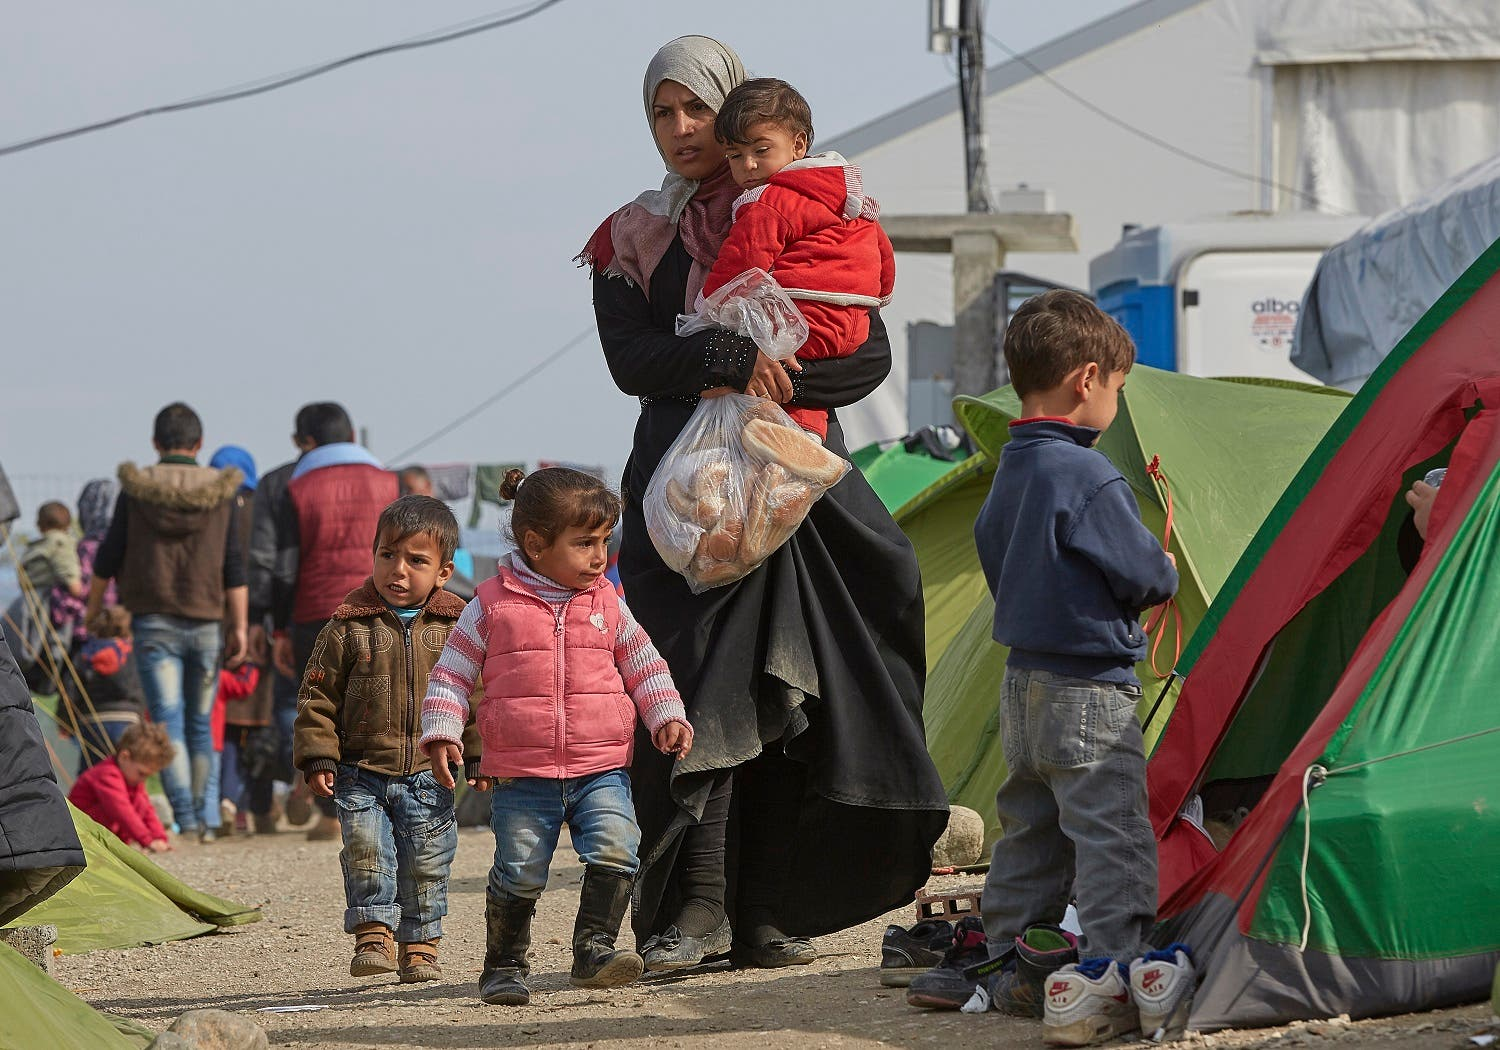 A migrant mother holds her child and a bag of bread near the border that separates the Greek side from the Macedonian one to be allowed to cross into Macedonia, at the northern Greek border station of Idomeni, Sunday, March 6, 2016. A regional governor called on the Greek government Saturday to declare a state of emergency for the area surrounding the Idomeni border crossing where thousands of migrants are stranded due to border restrictions along the route toward western Europe. (AP Photo/Visar Kryeziu)